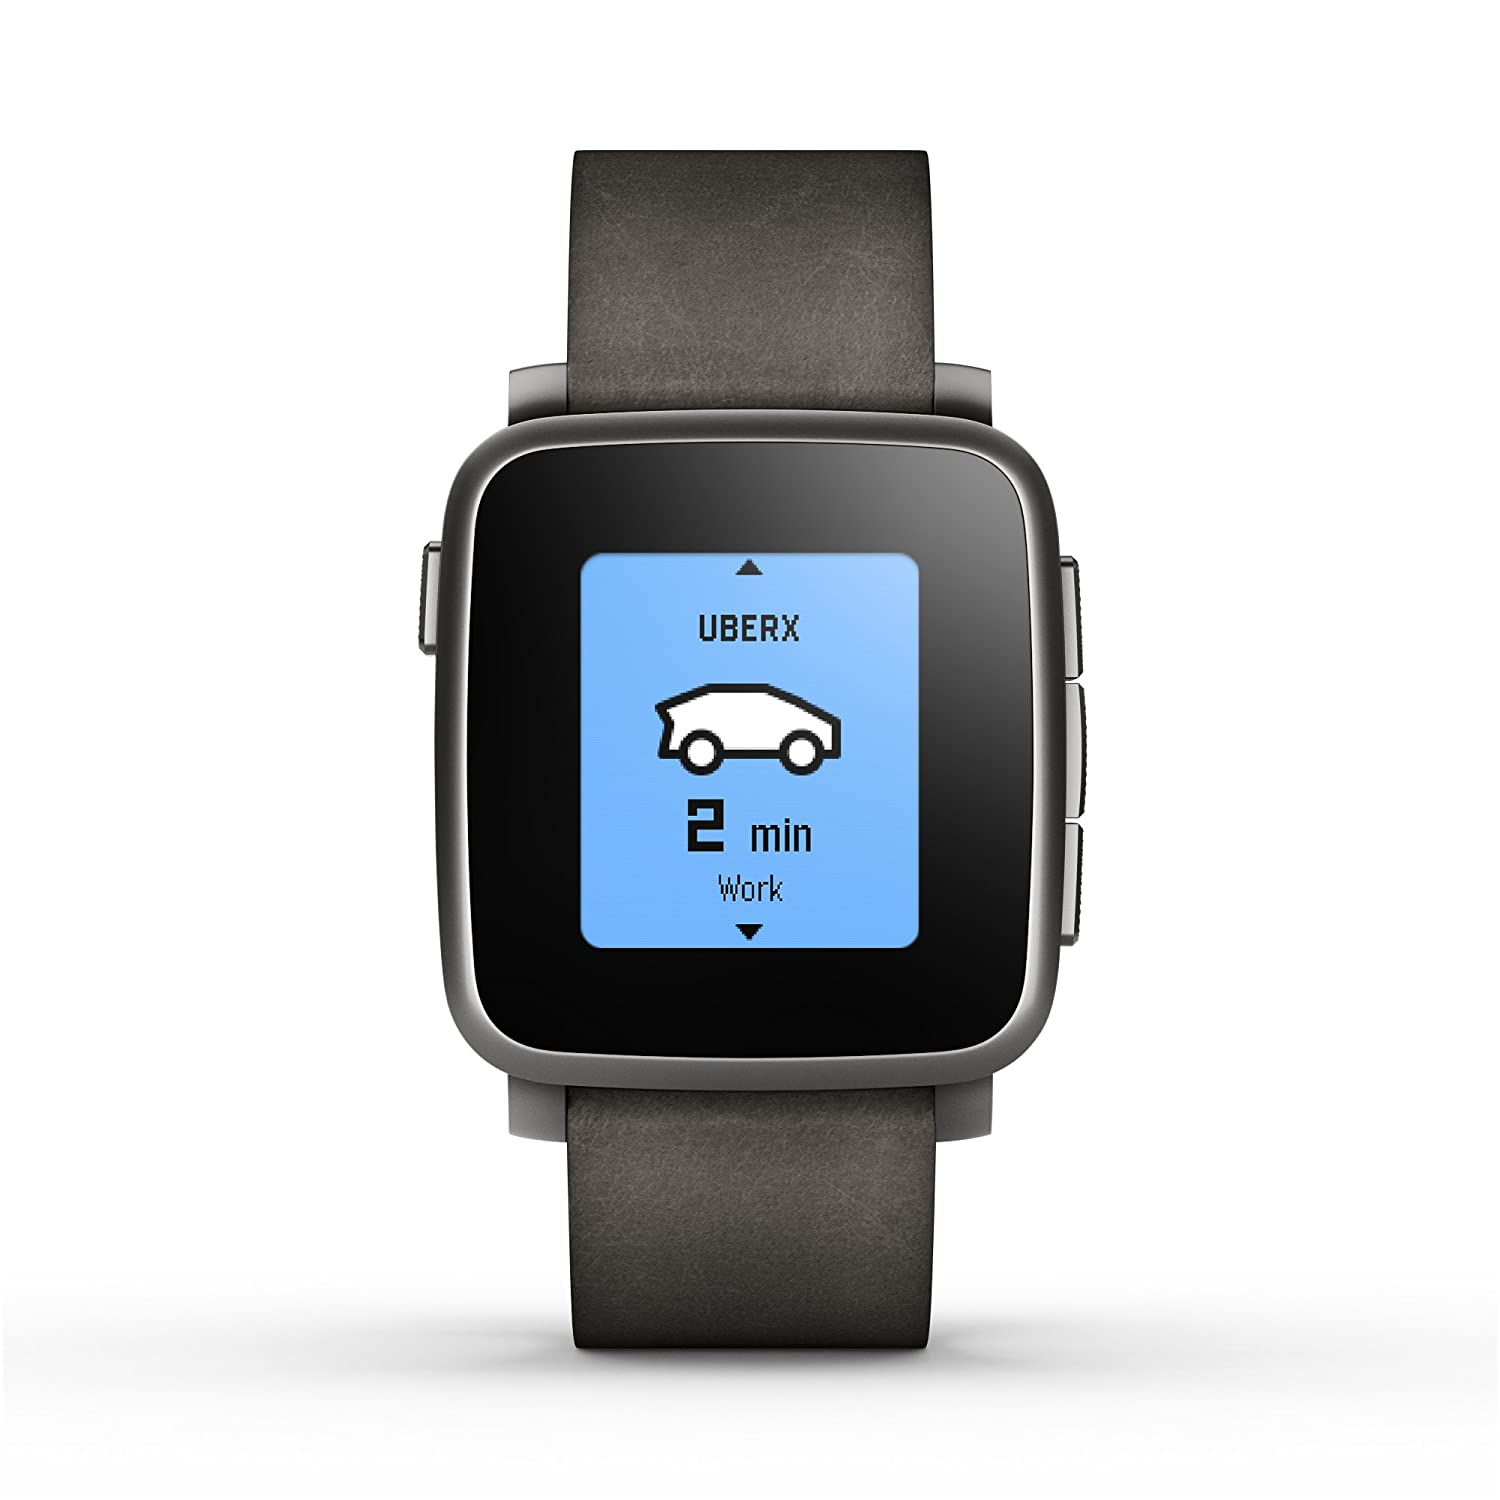 Amazon.com  Pebble Time Steel Smartwatch for Apple Android Devices - Black   Cell Phones   Accessories 8a69e3fd68be5